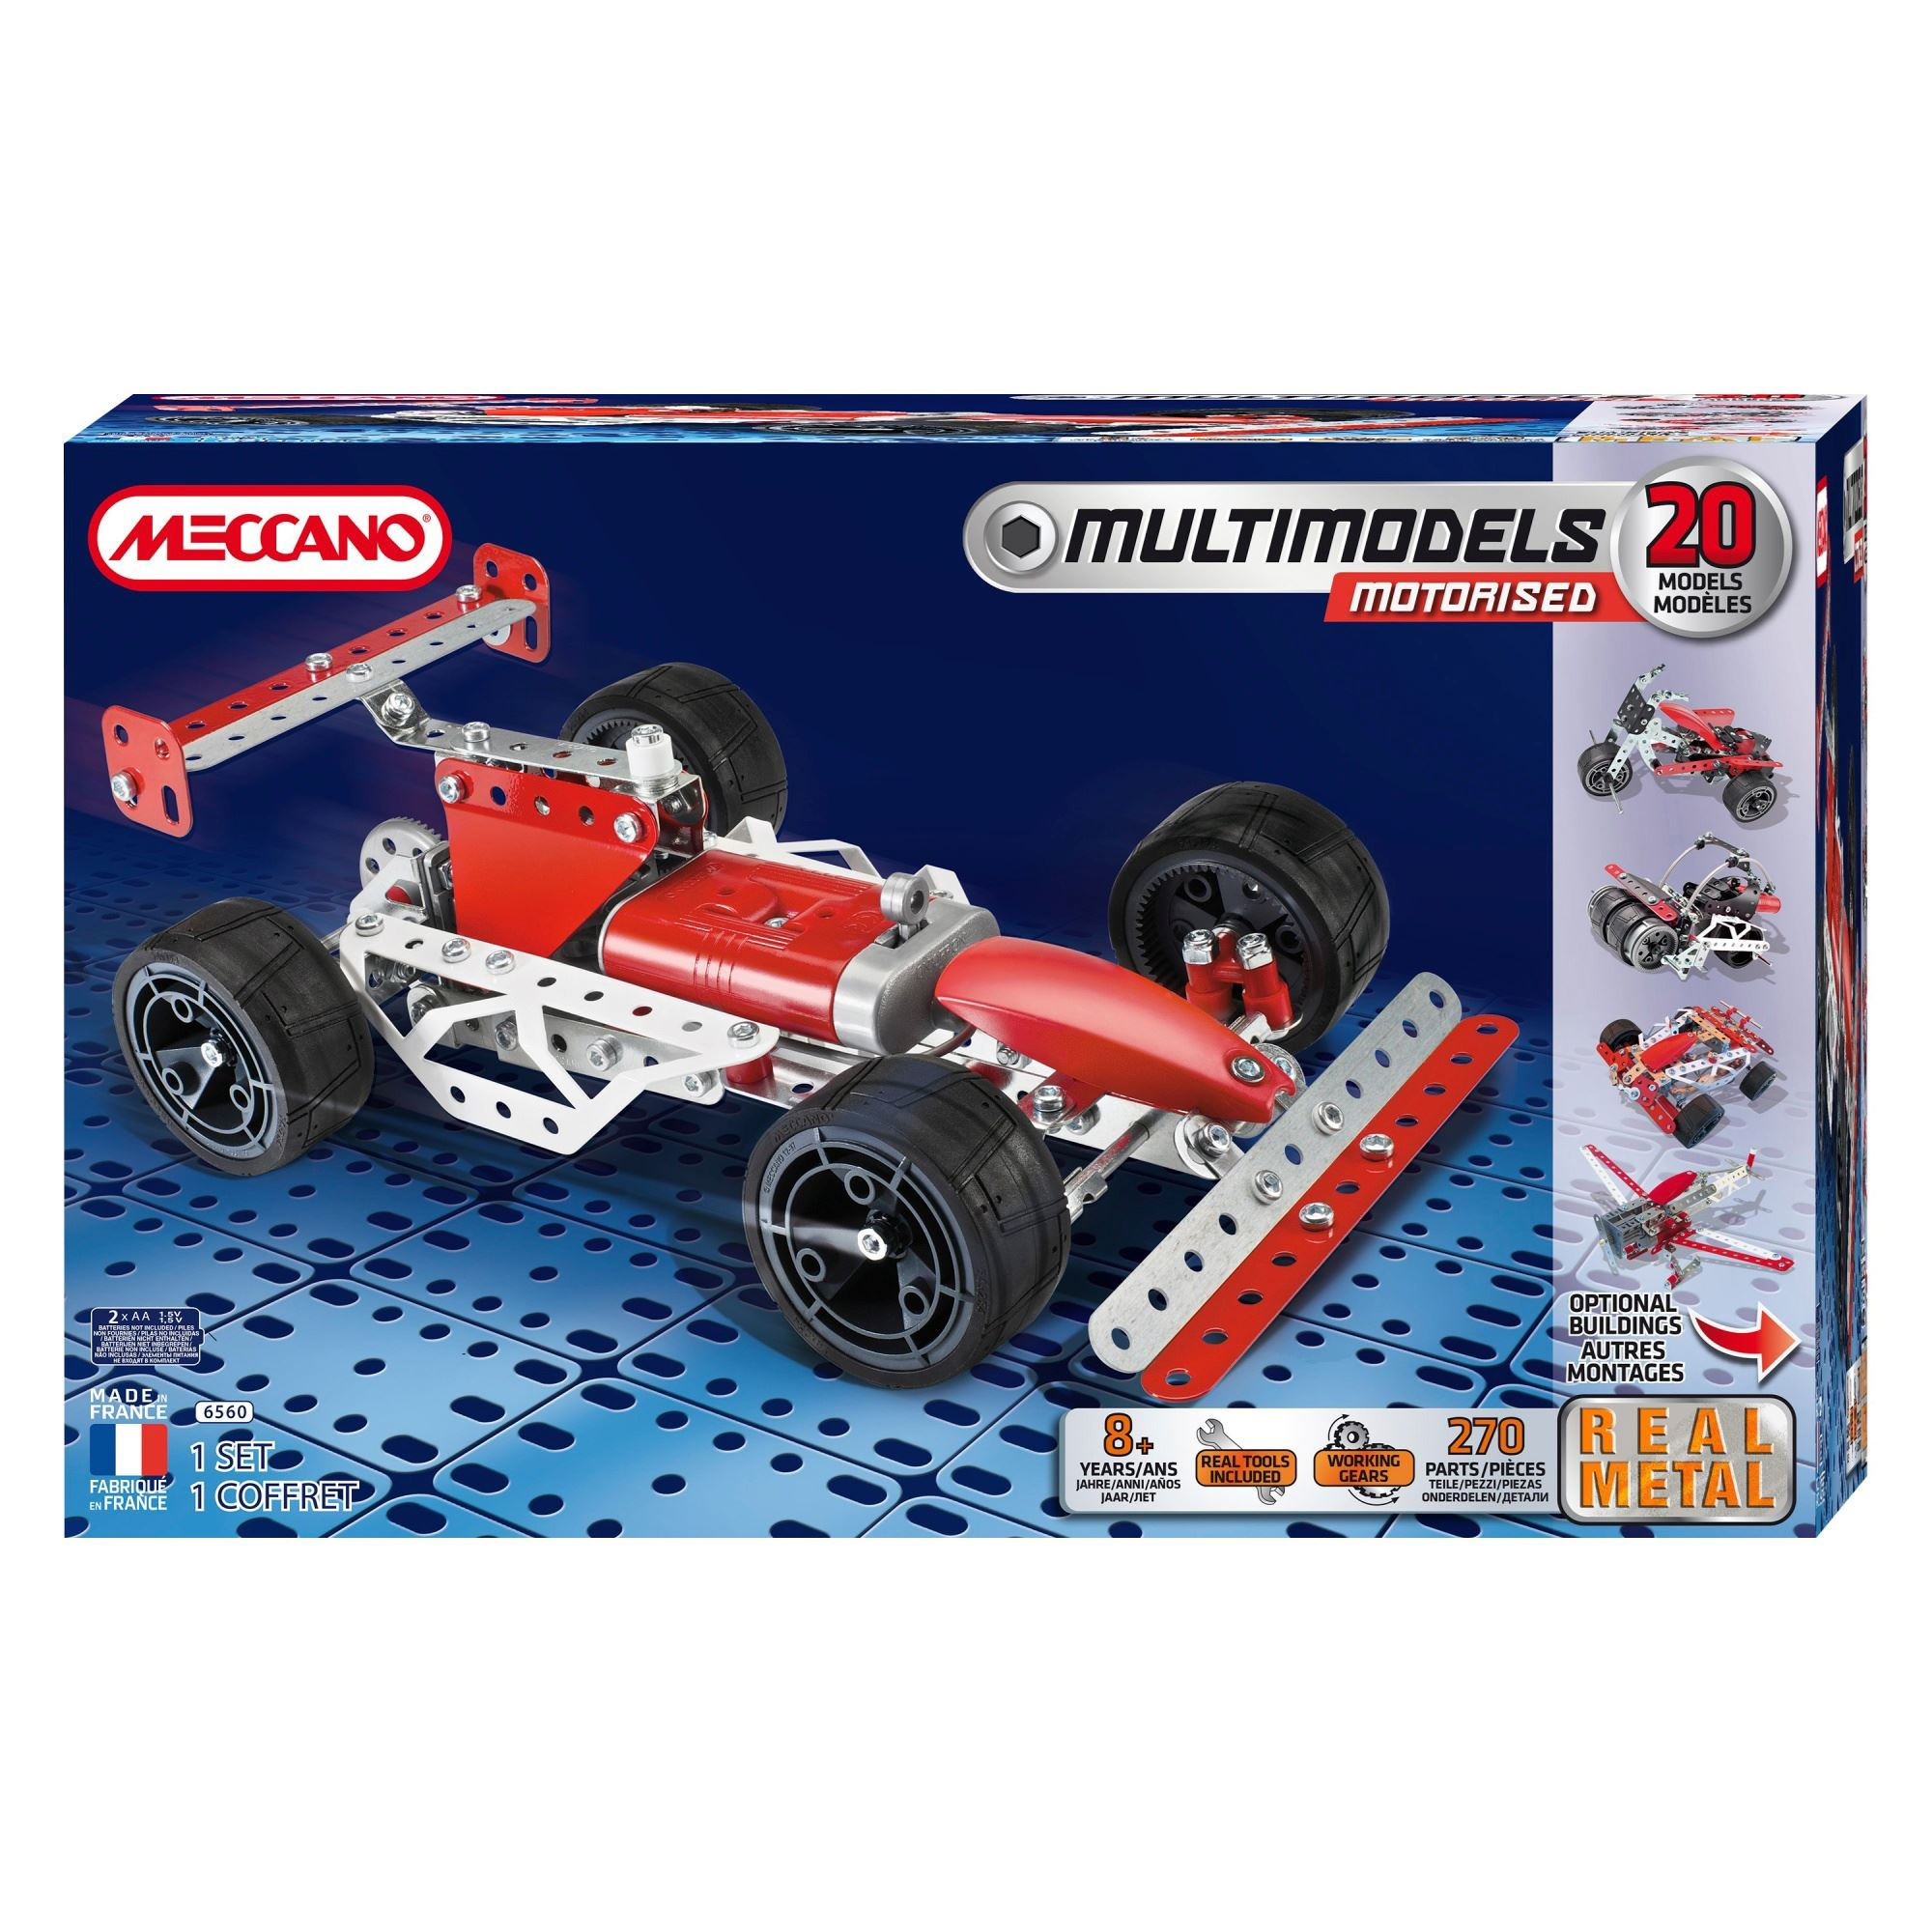 Meccano Multimodels 20 Model Set